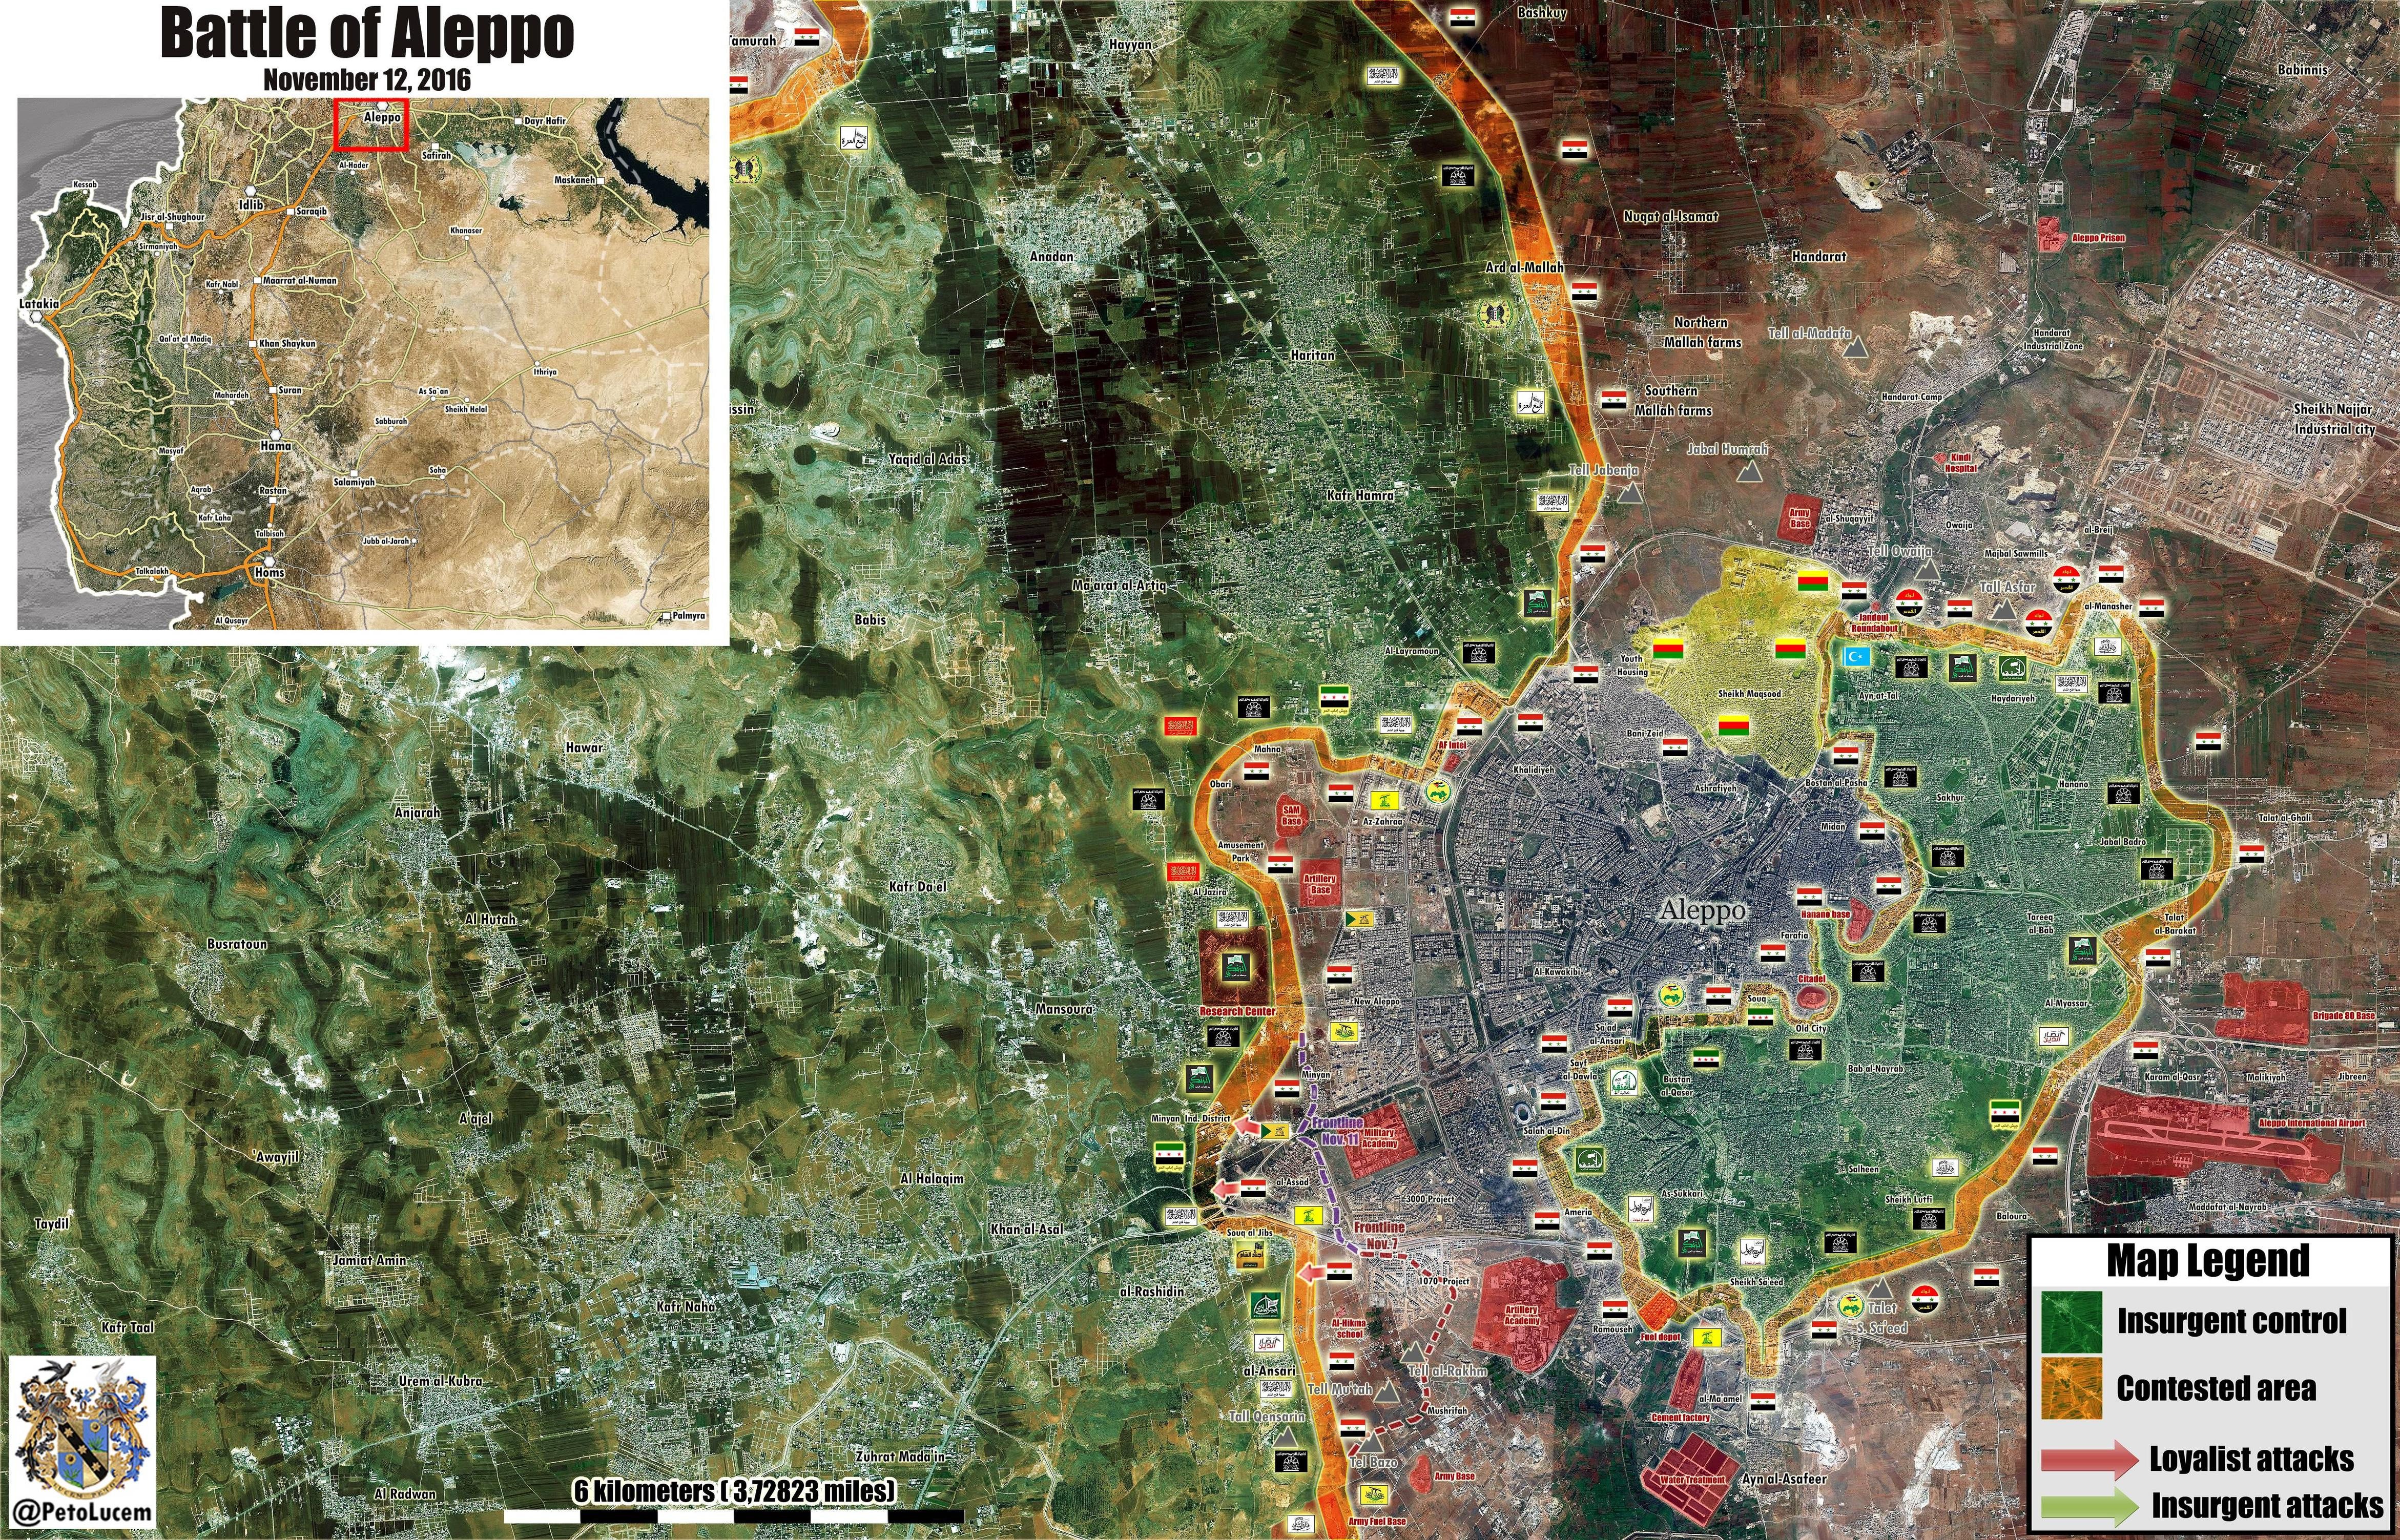 Syrian War Map Update: General Look at Military Situation in Aleppo City on November 12, 2016